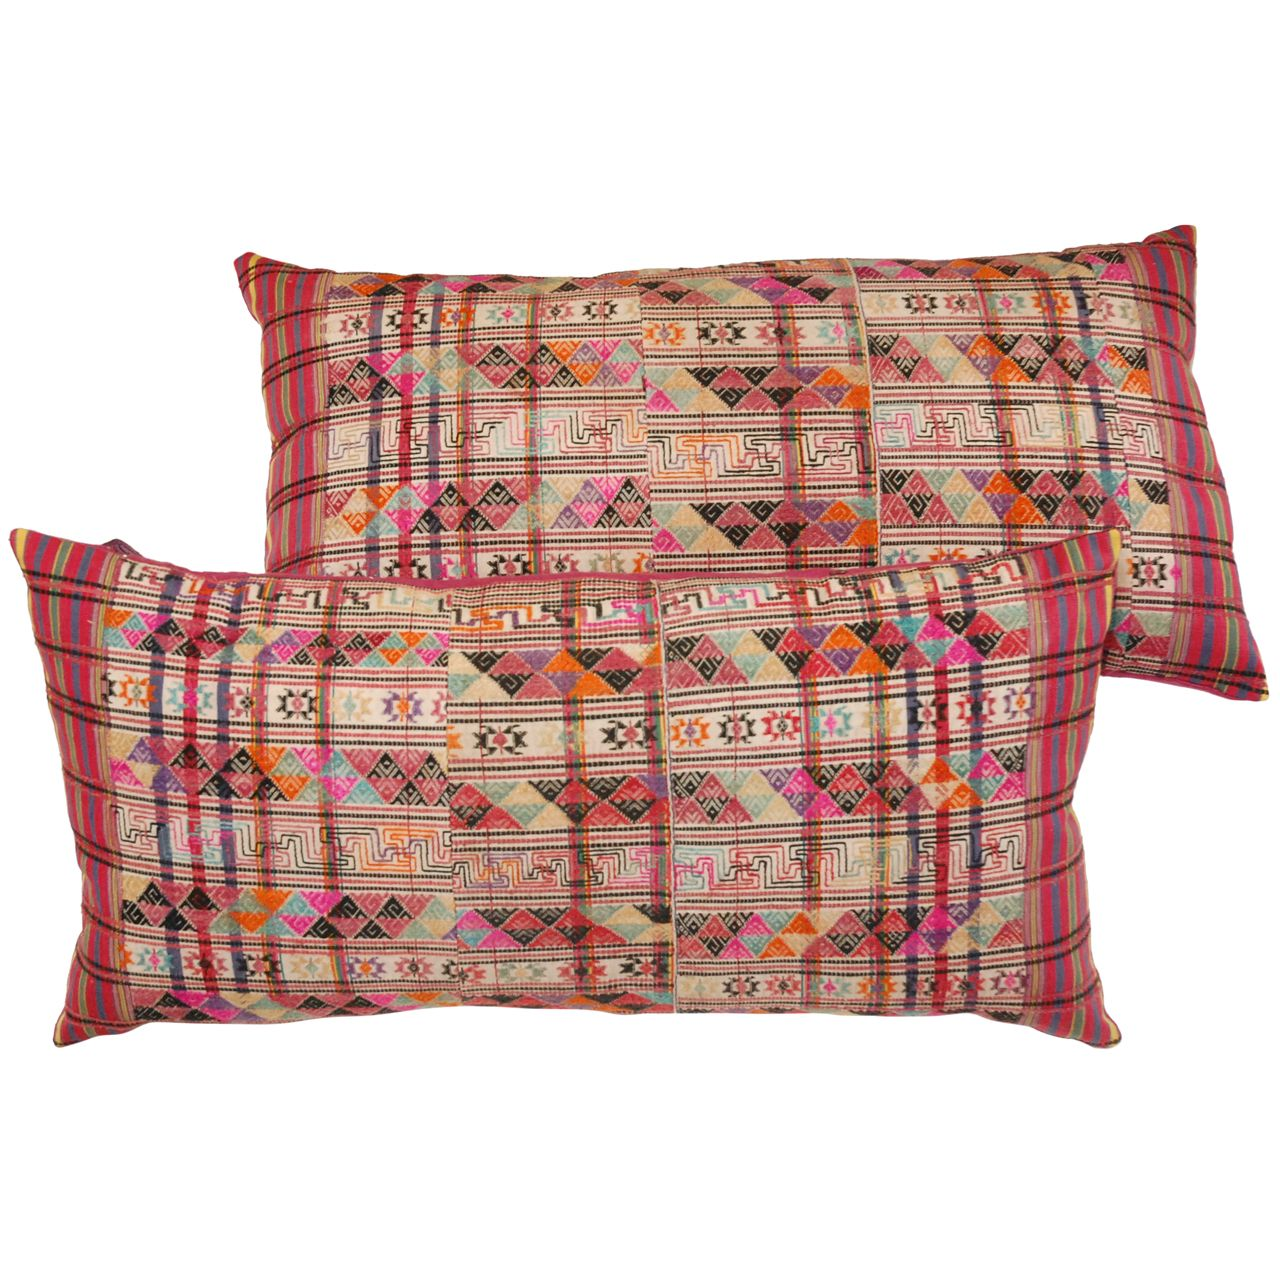 1stdibs Bhutanese Embroidery Large Pillows - Afrikanische Teppiche